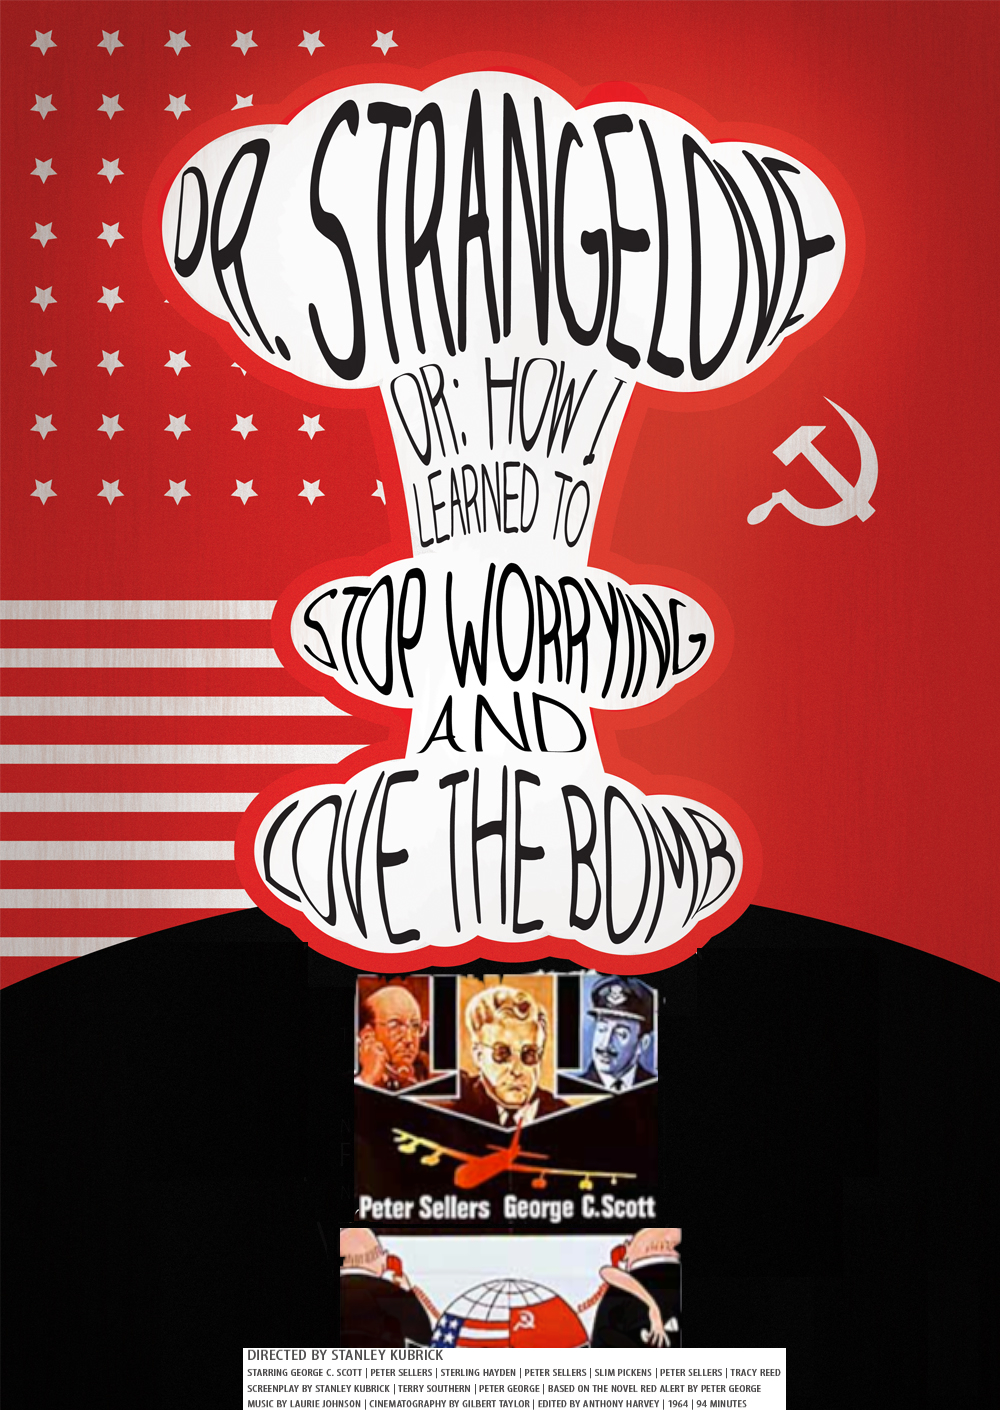 dr_strangelove_or_how_i_learned_to_stop_worrying_and_love_the_bomb_1964.jpg